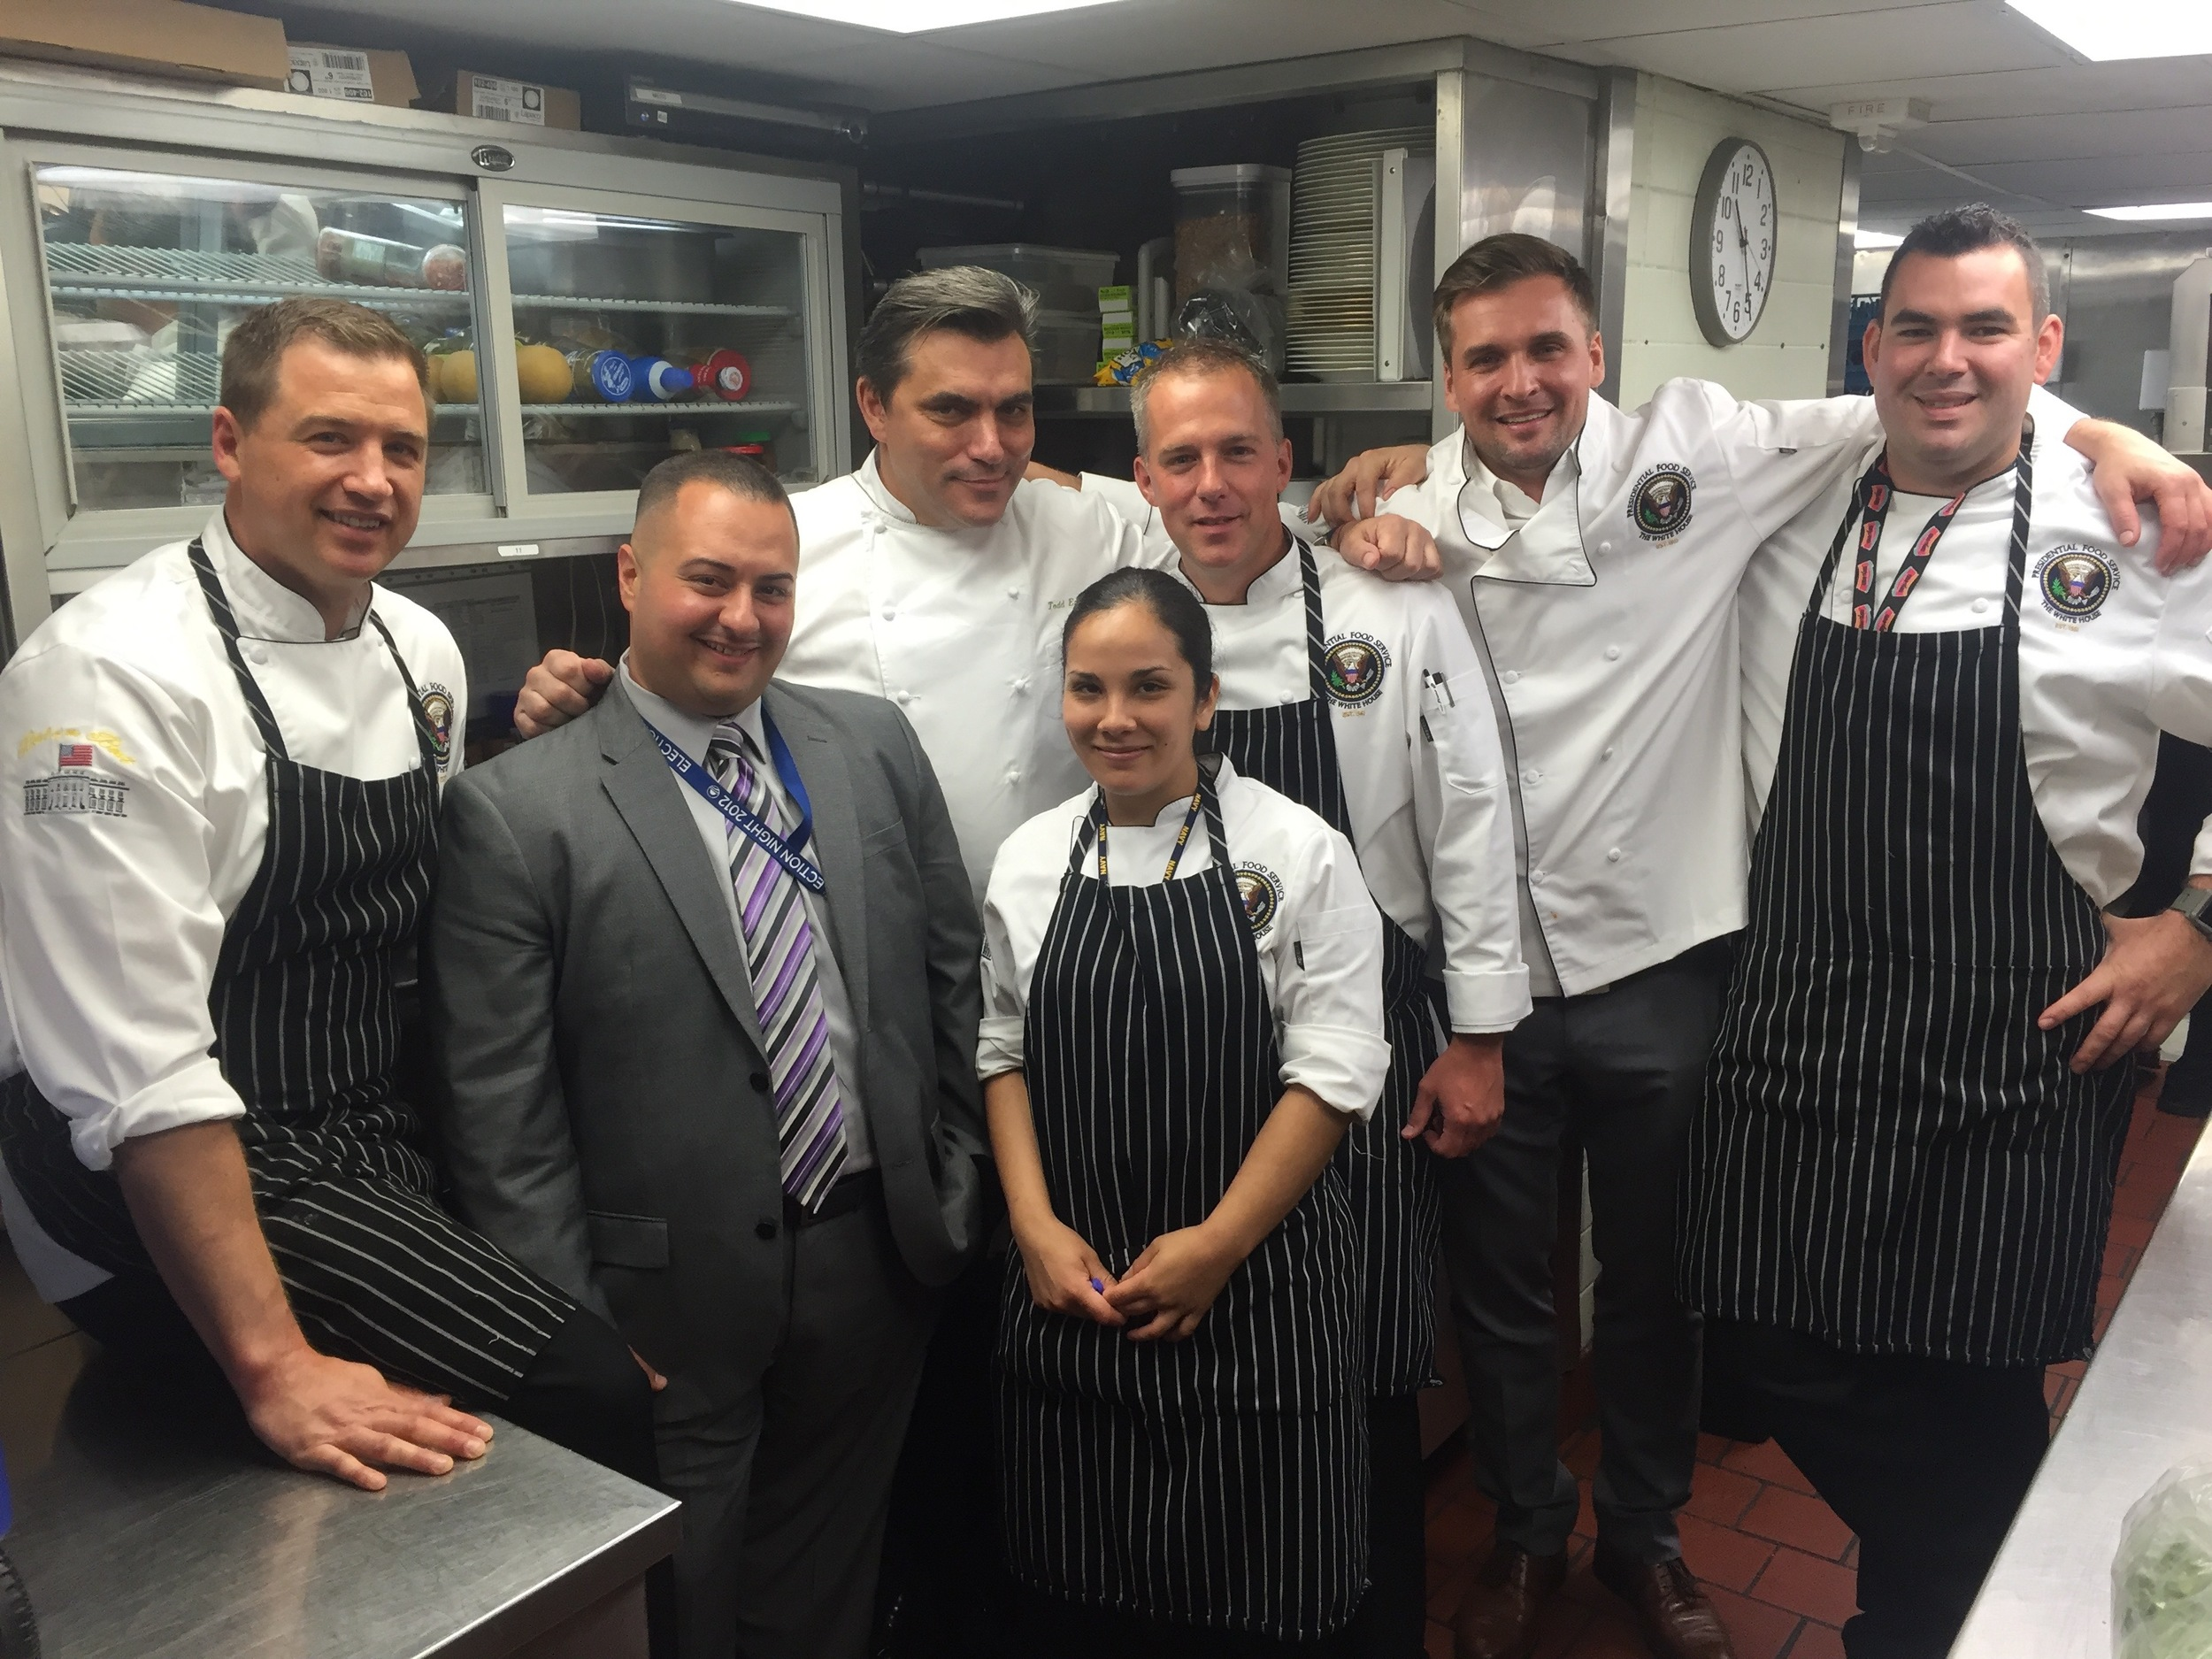 Chef TE with members of the US Navy FoodService Team